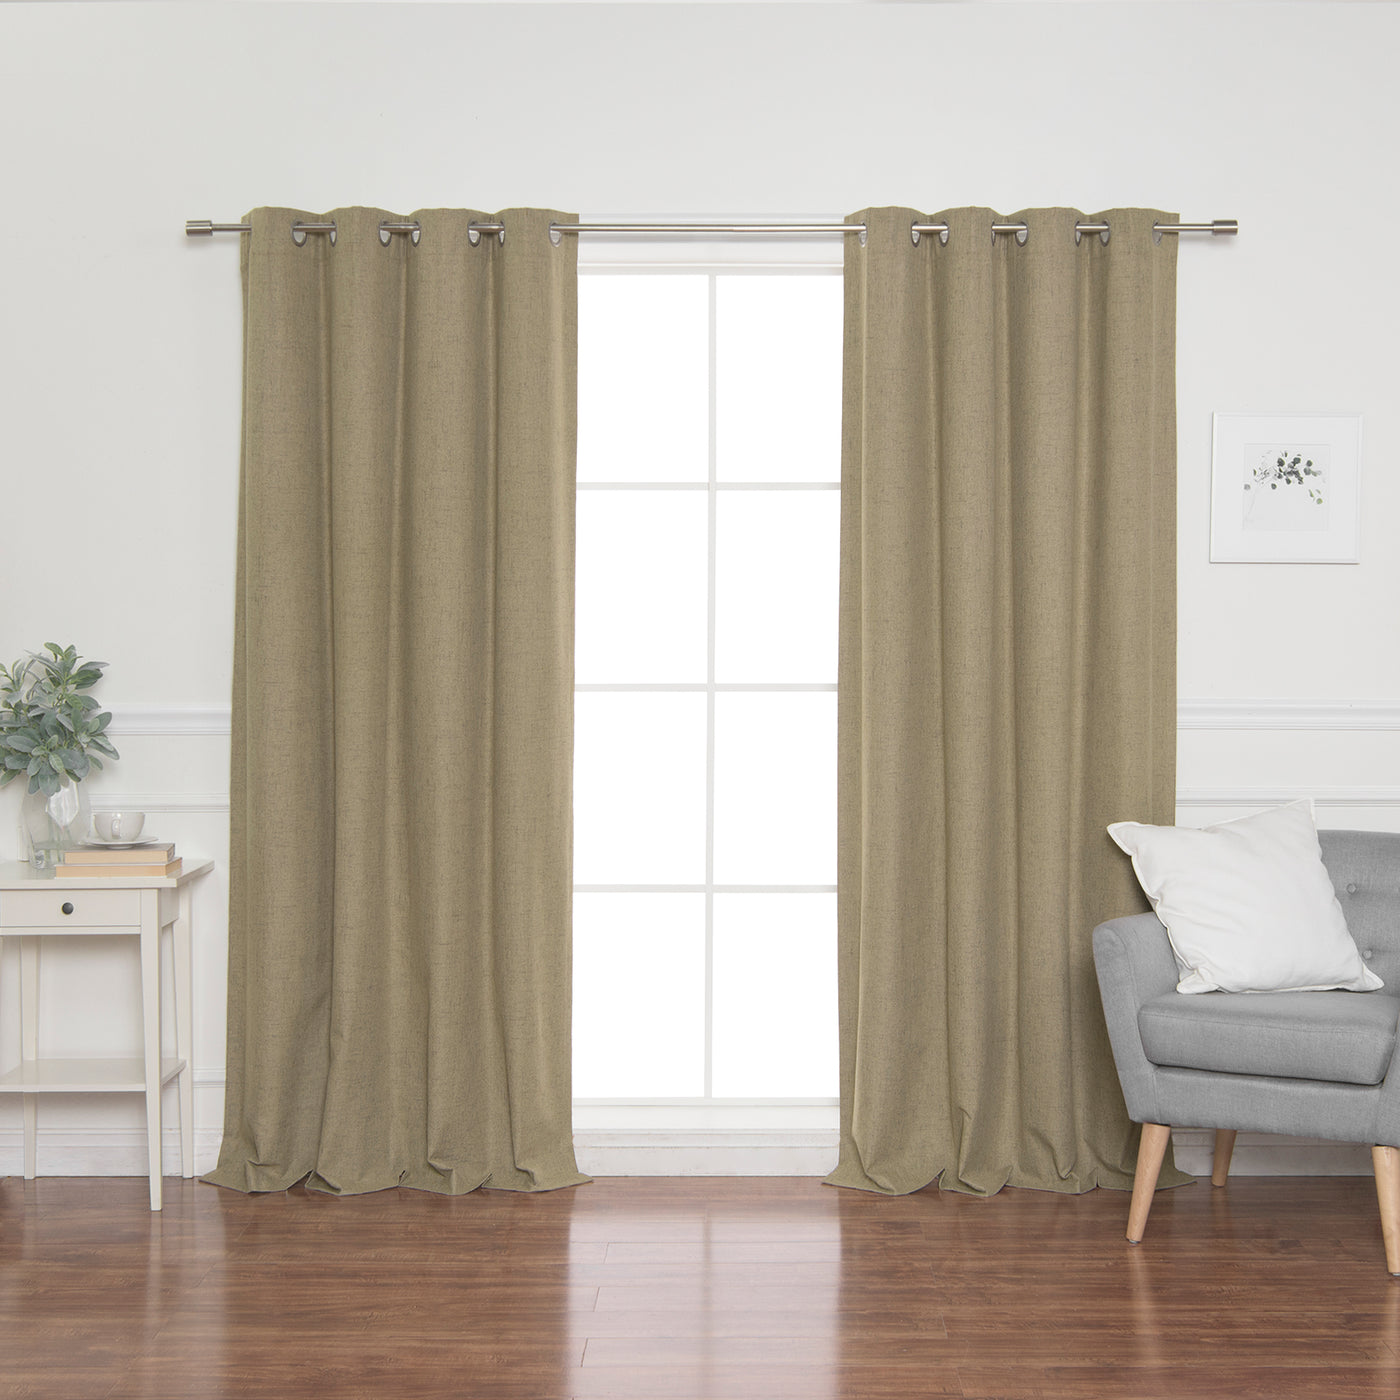 Faux Linen Grommet Thermal Room Darkening Curtains